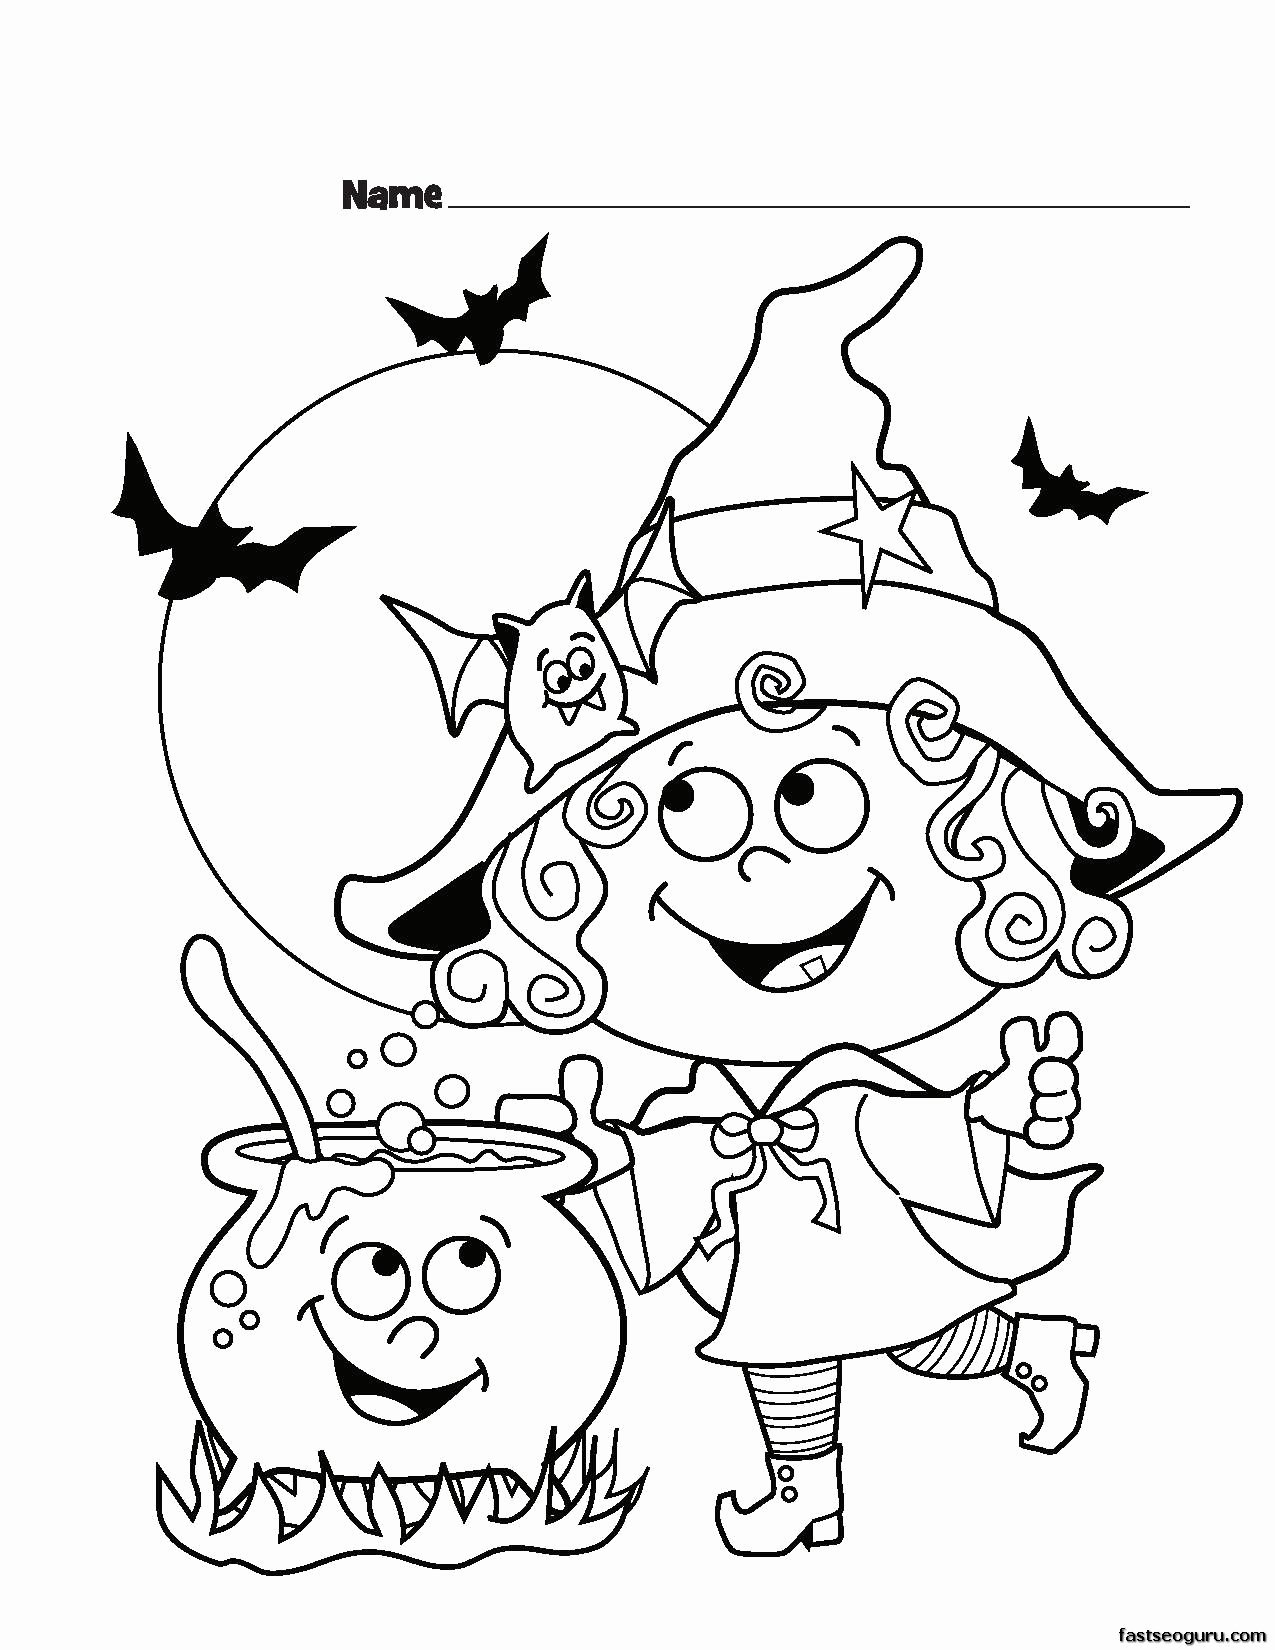 Halloween Coloring Worksheets for Preschoolers Inspirational astonishing Free Halloween Coloring Pages Inspirations